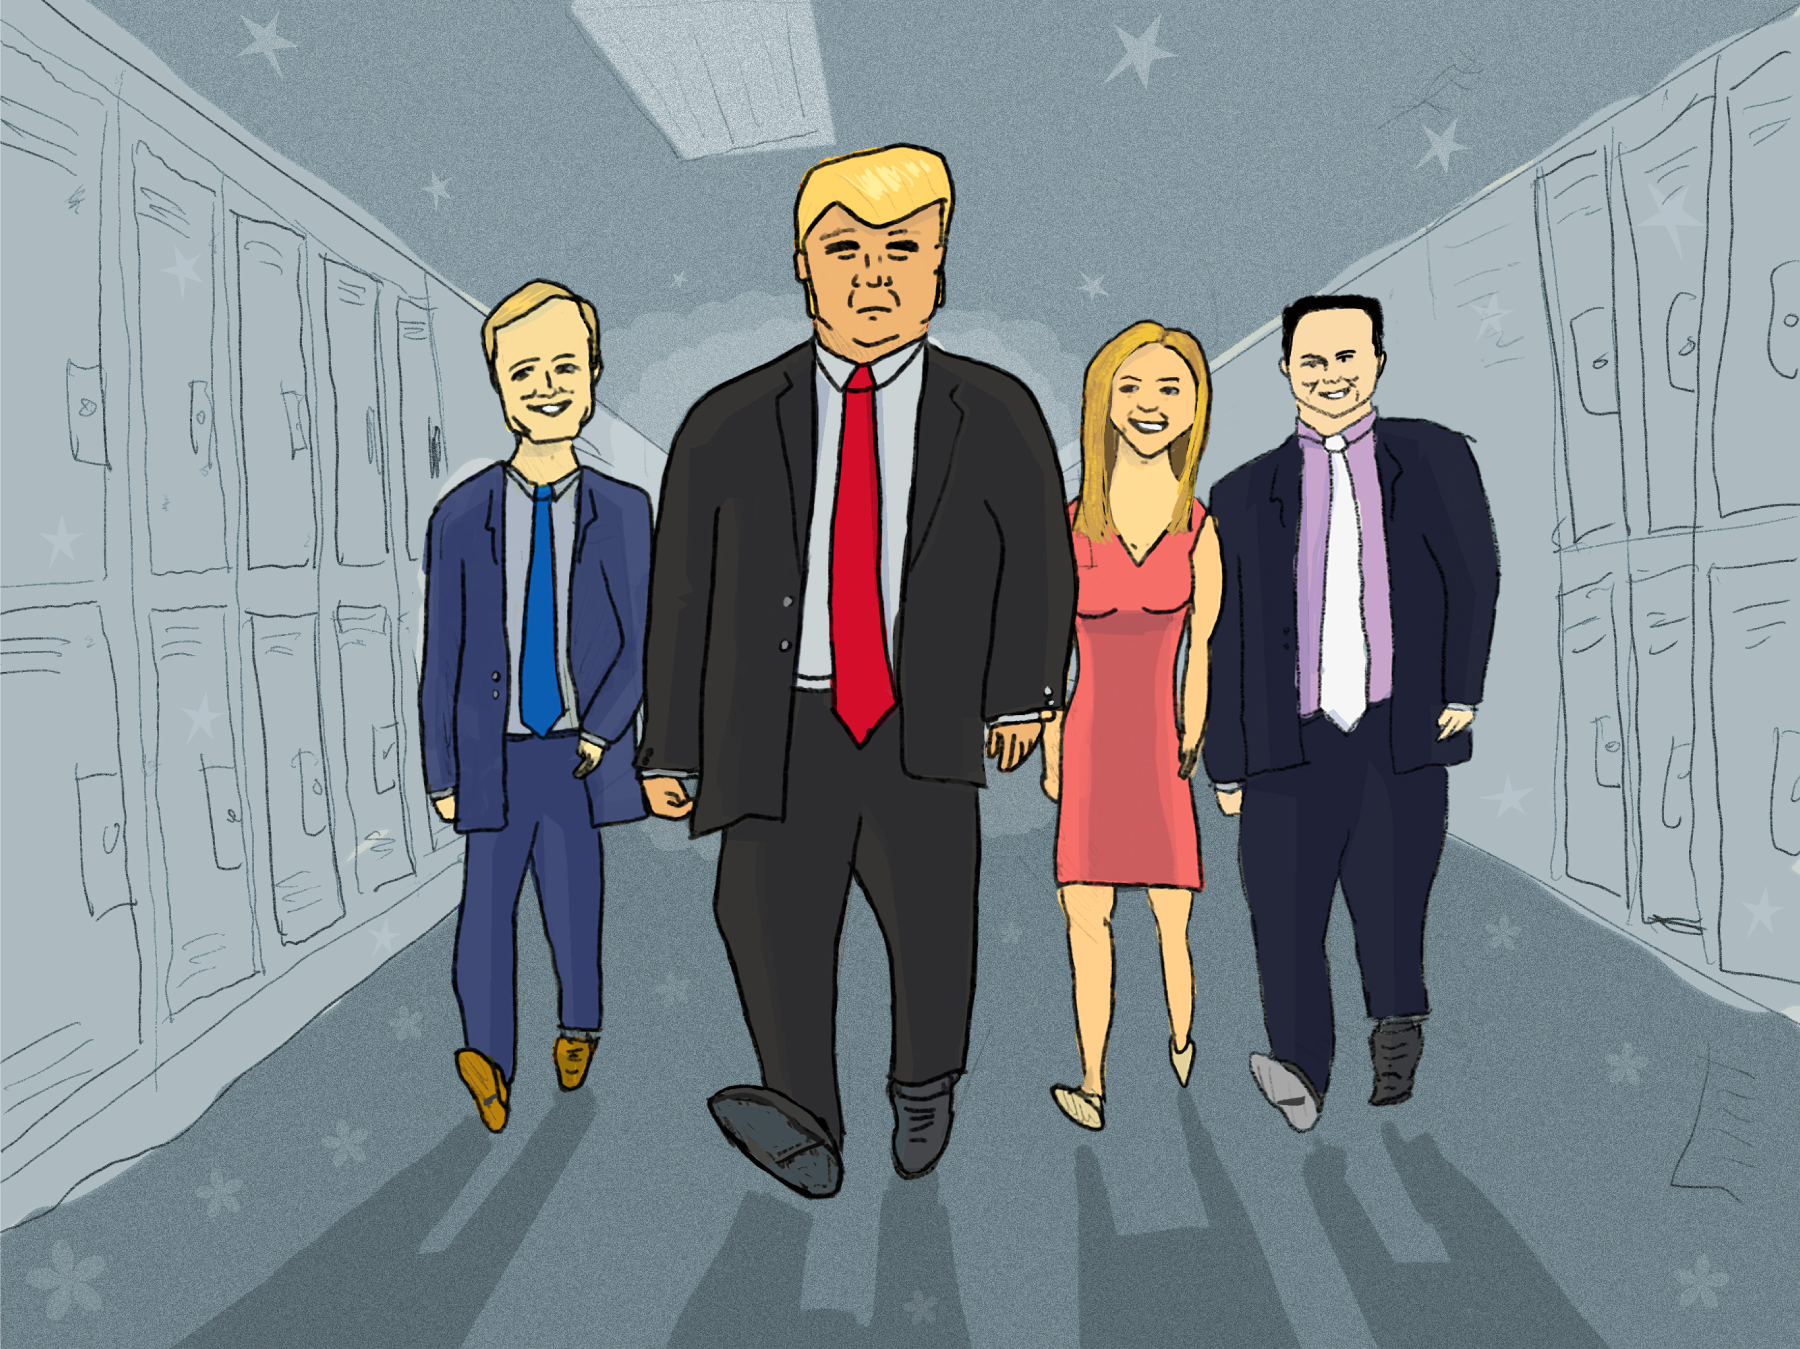 We analyzed 17 months of Fox & Friends transcripts. It's far weirder than state-run media.